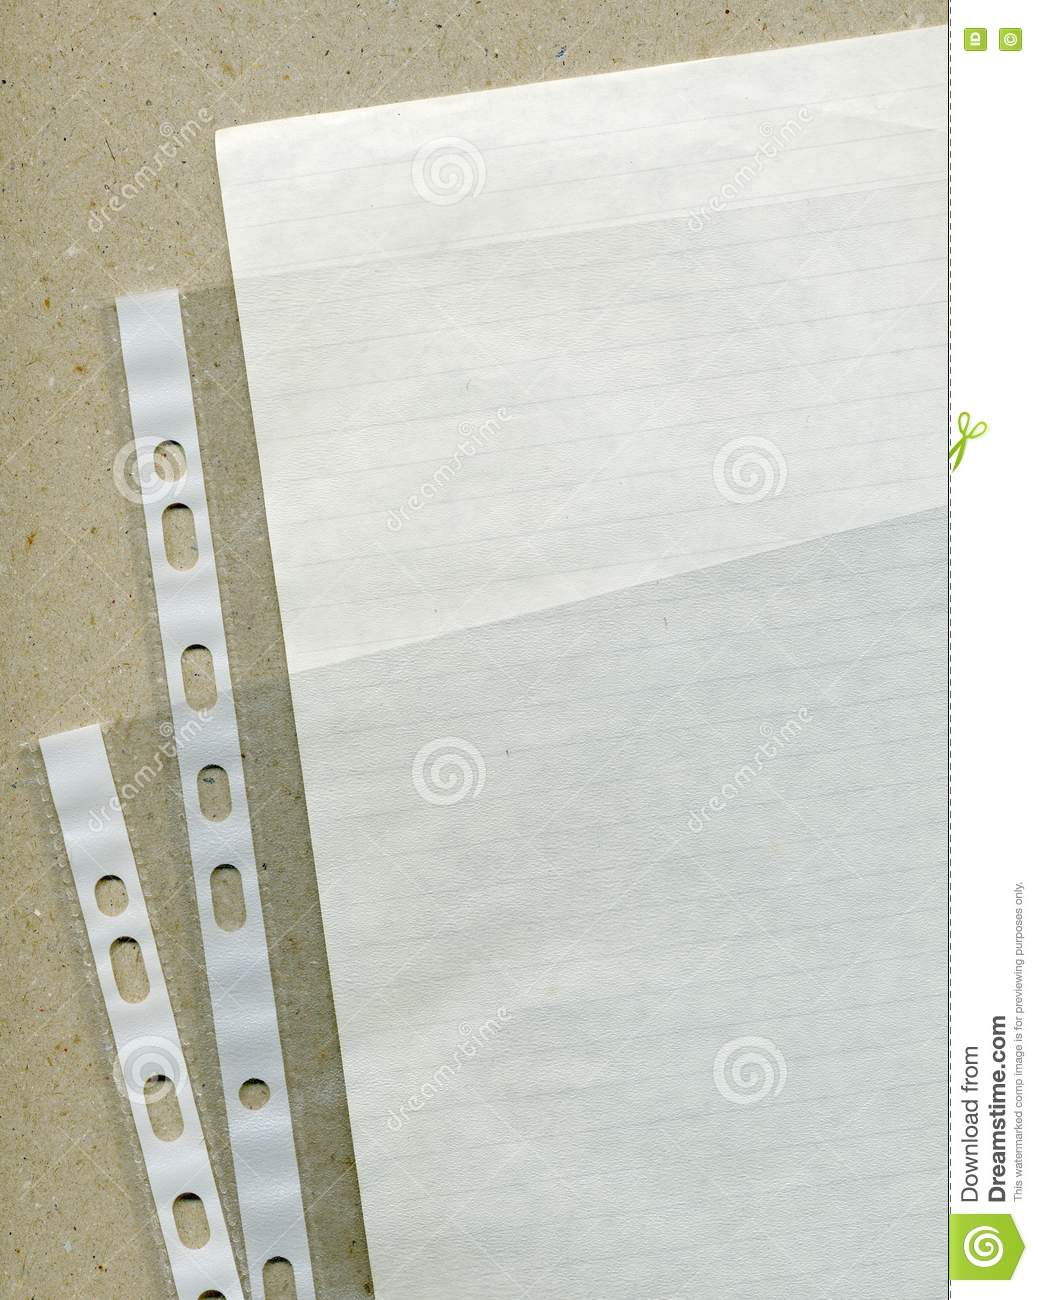 plastic file folders stock photo  image of personal  binder